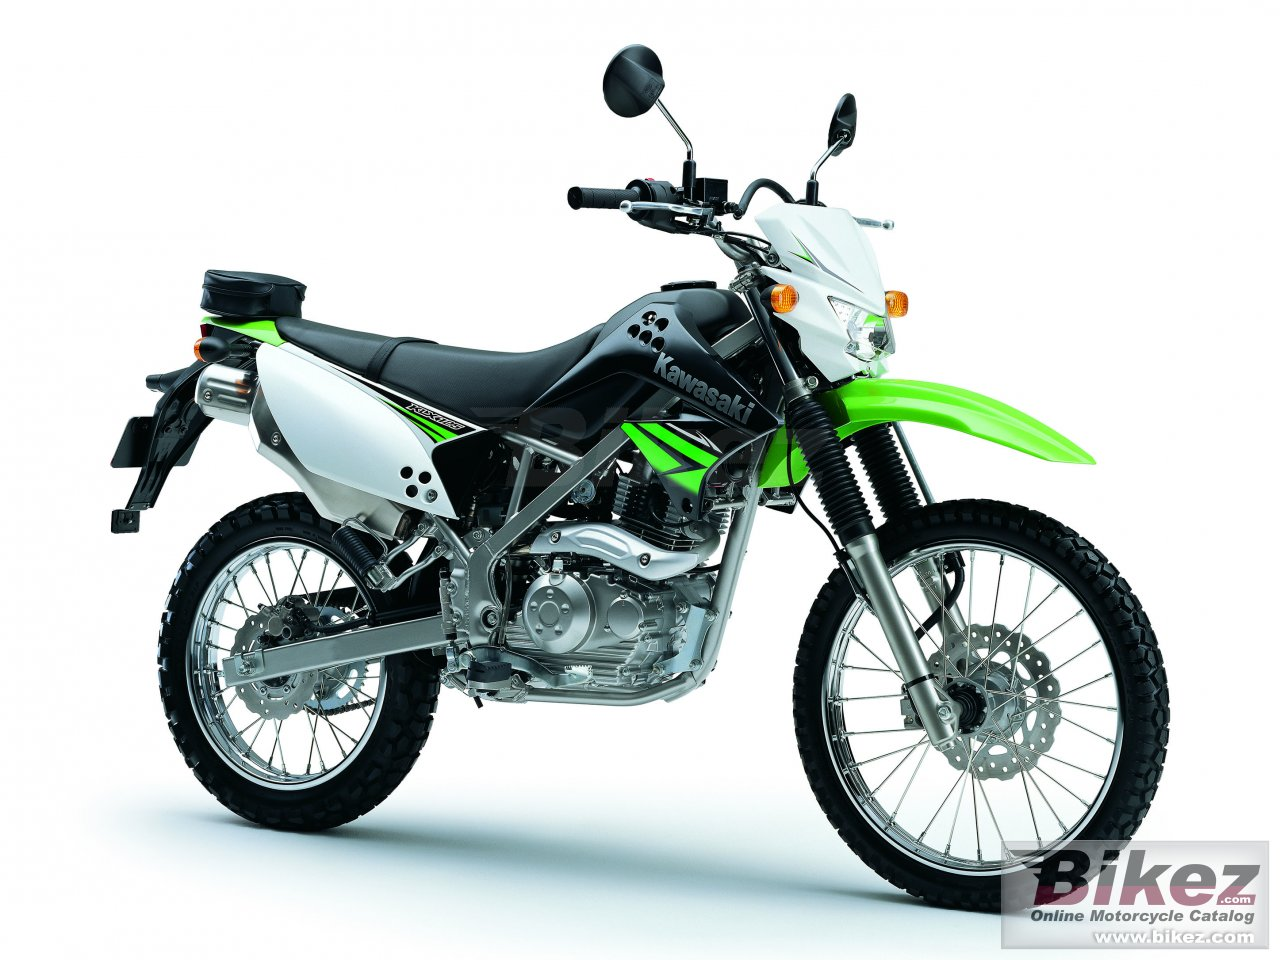 Big Kawasaki klx 125c picture and wallpaper from Bikez.com